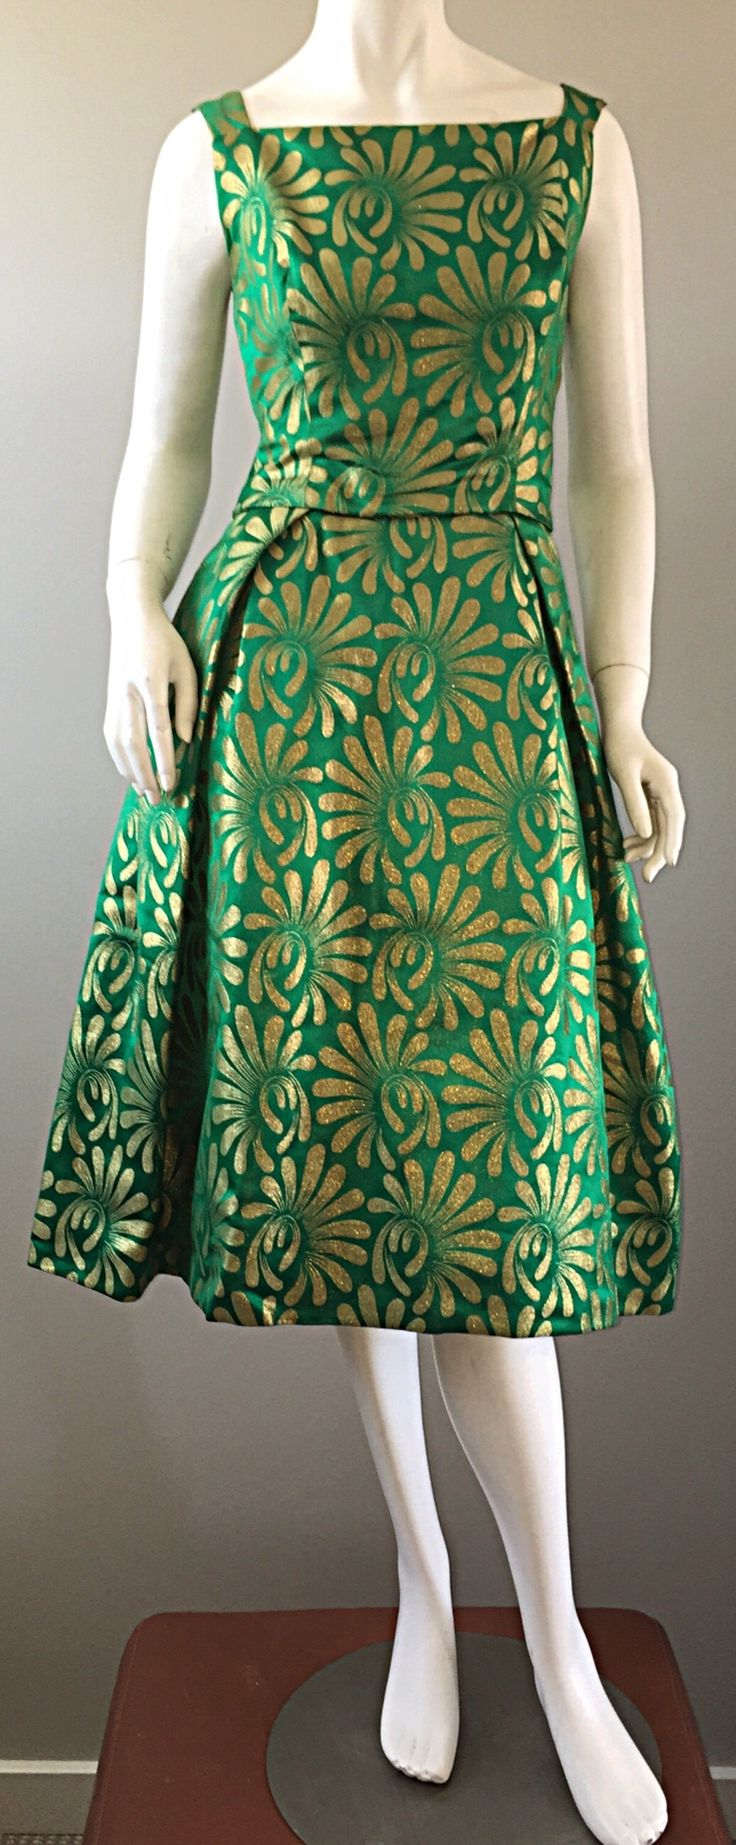 1767 best images about Vintage fashion - 1950s on Pinterest | Day ...